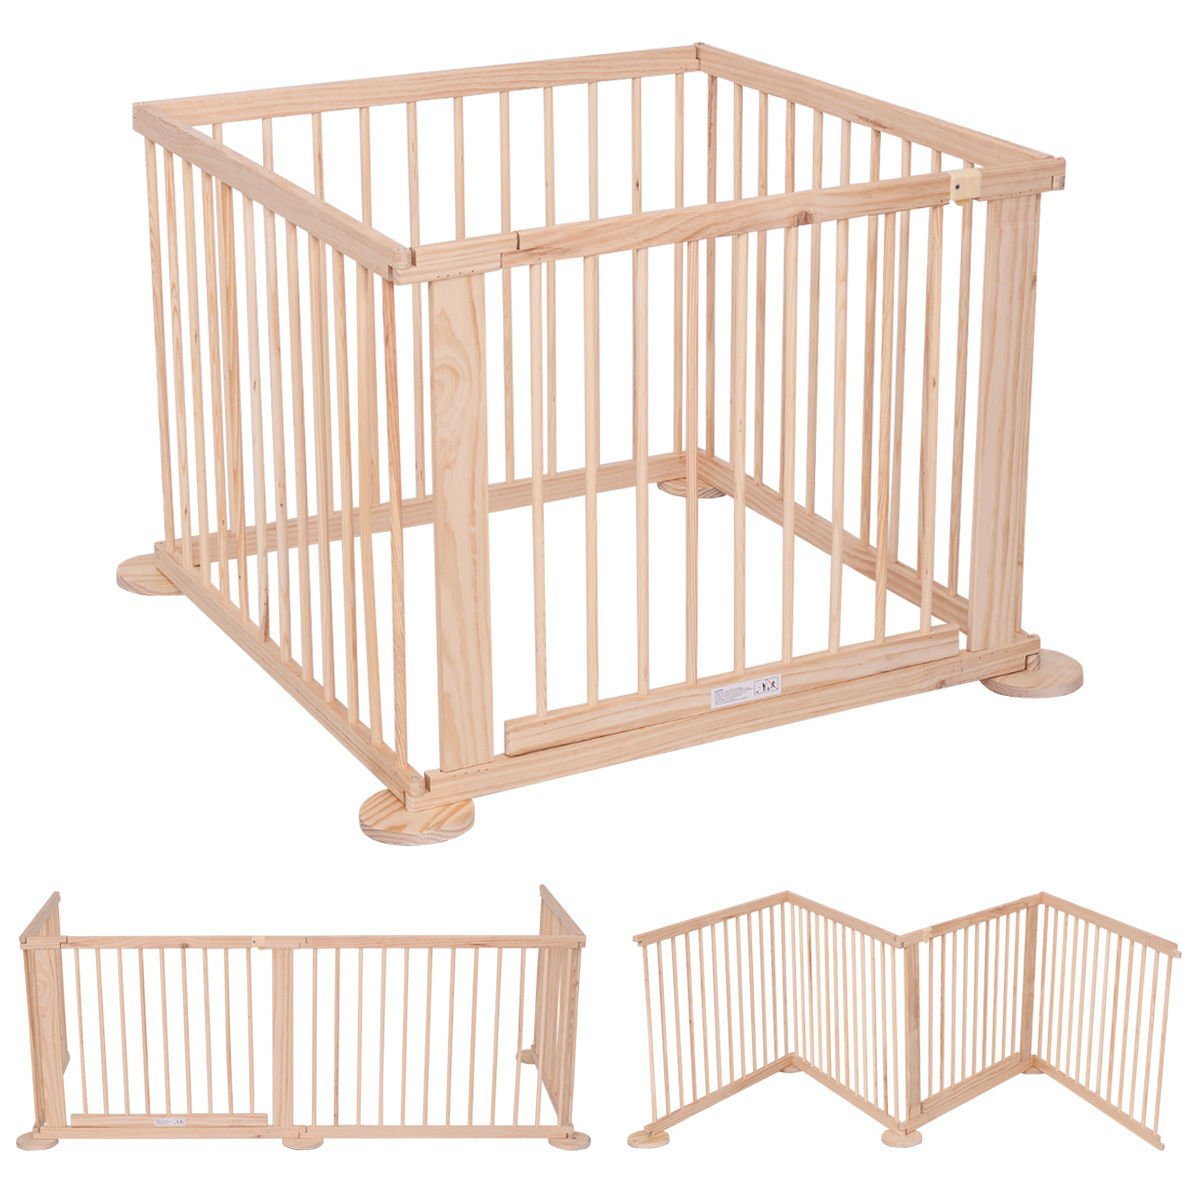 Kids Wooden Playpen Natural Pine Wood 4 Side Baby Child Wooden Foldable Play Pens Divider Heavy Duty with Safety Lock WAF